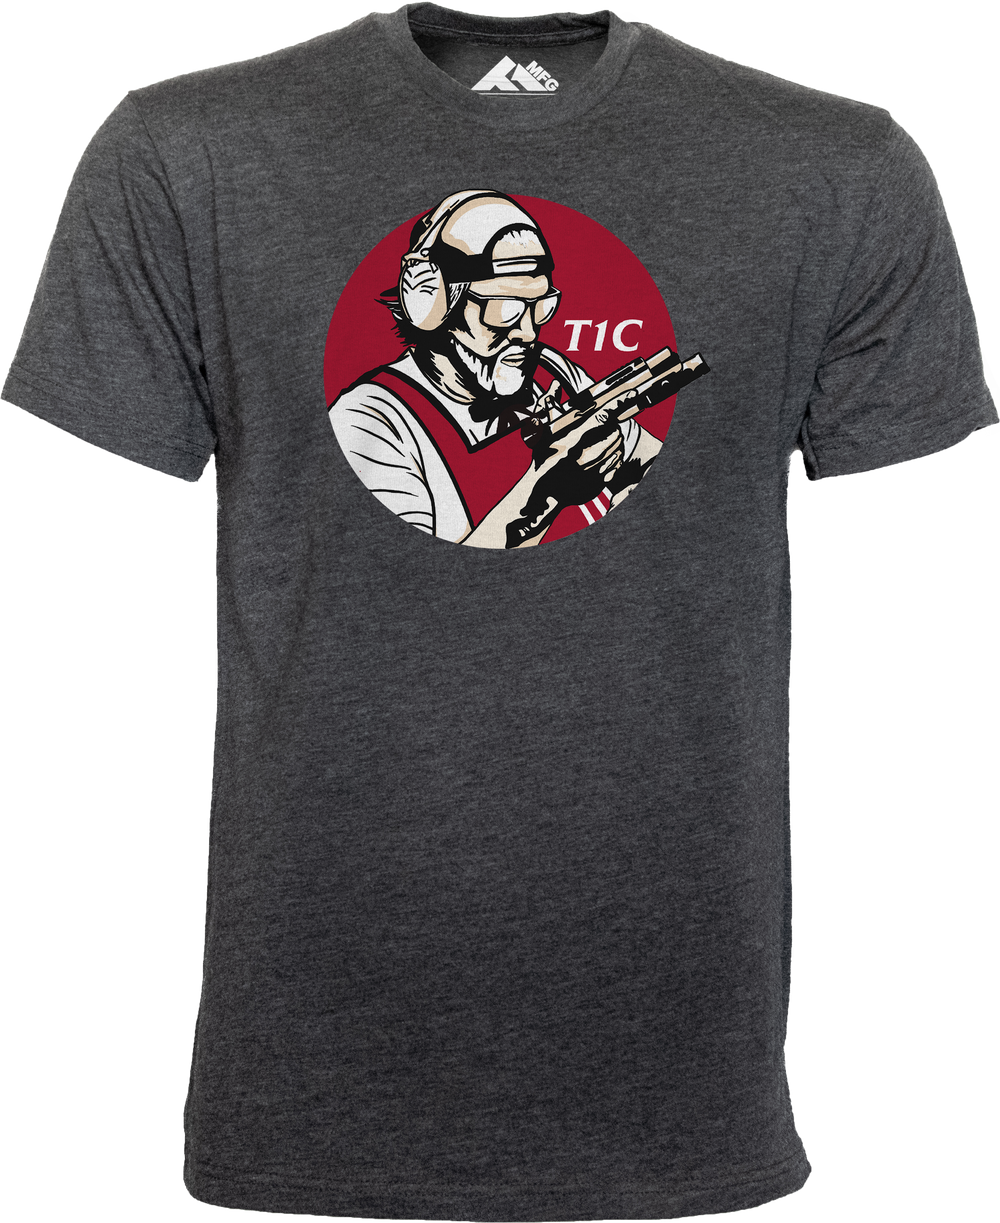 T1C - CHICKEN - T SHIRT